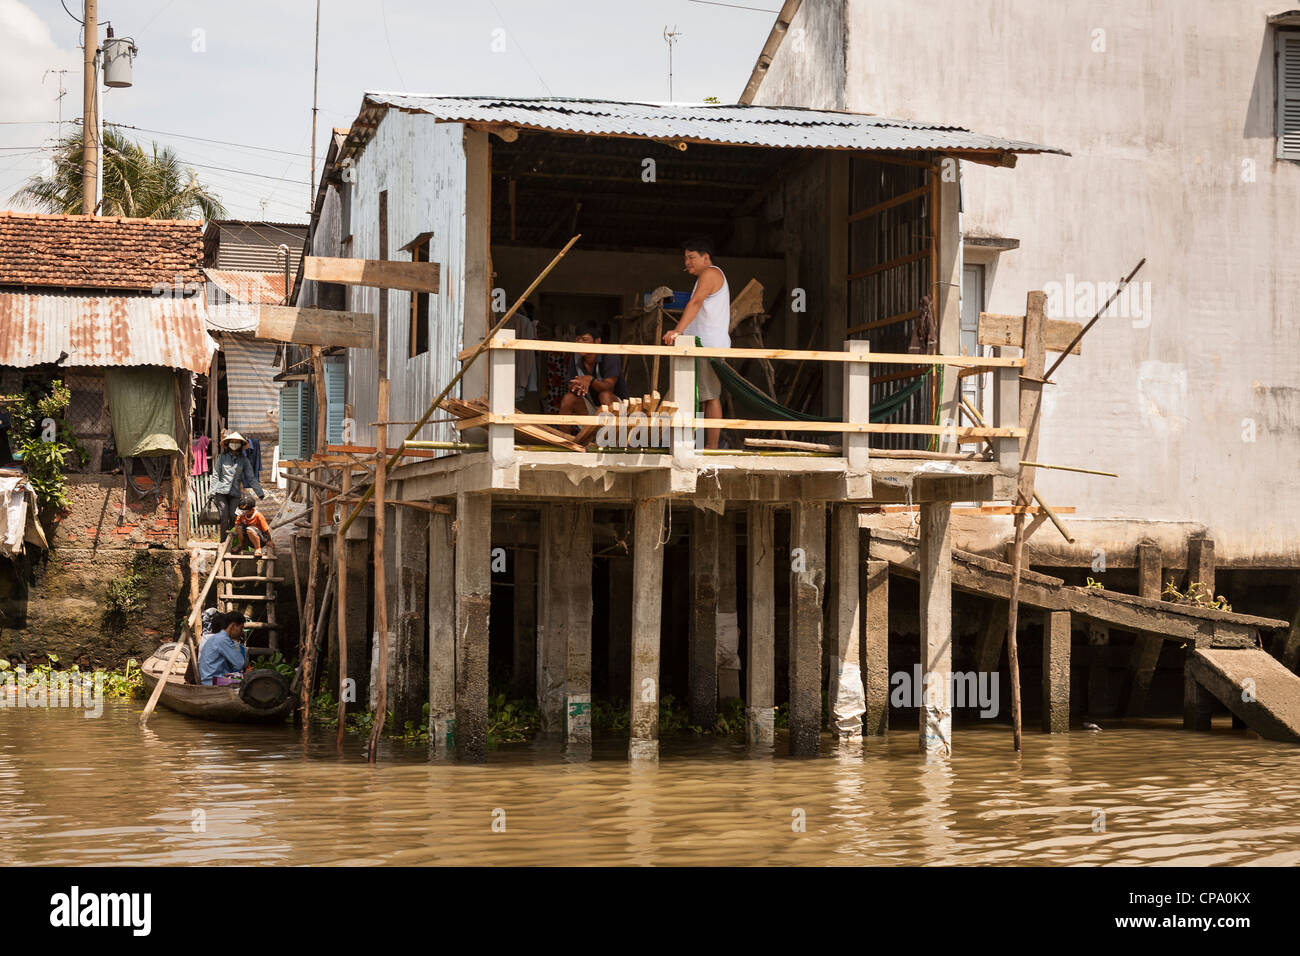 Riverside house supported by stilts, Cai Be, Mekong River Delta, Vietnam Stock Photo